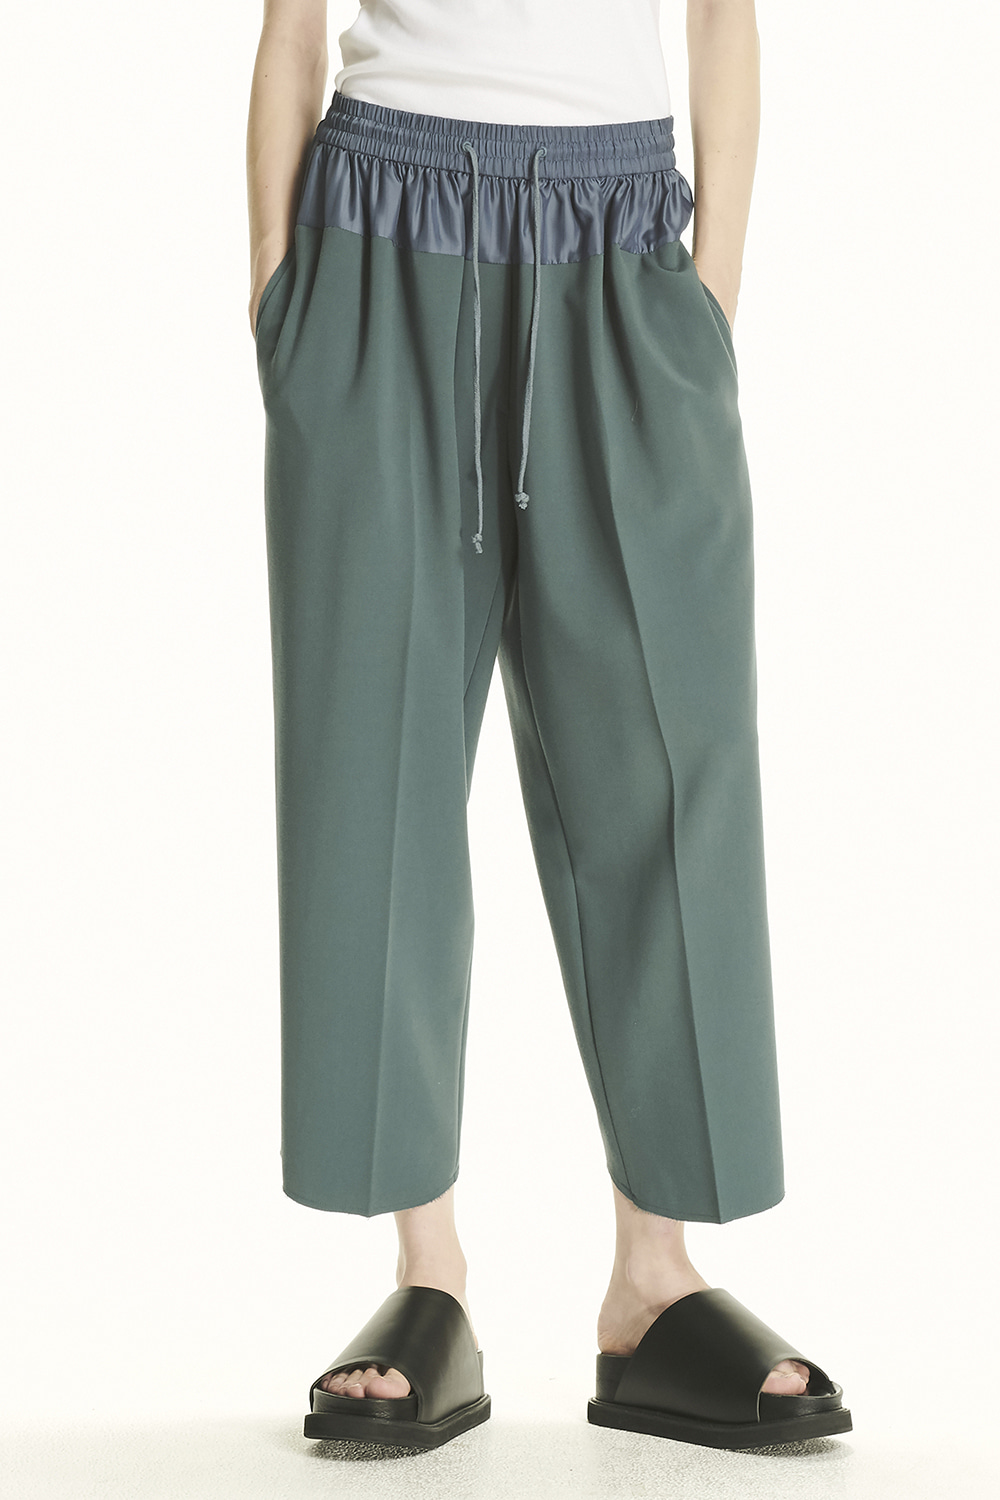 PS21 CONTRAST WAIST BAND GREEN PANTS